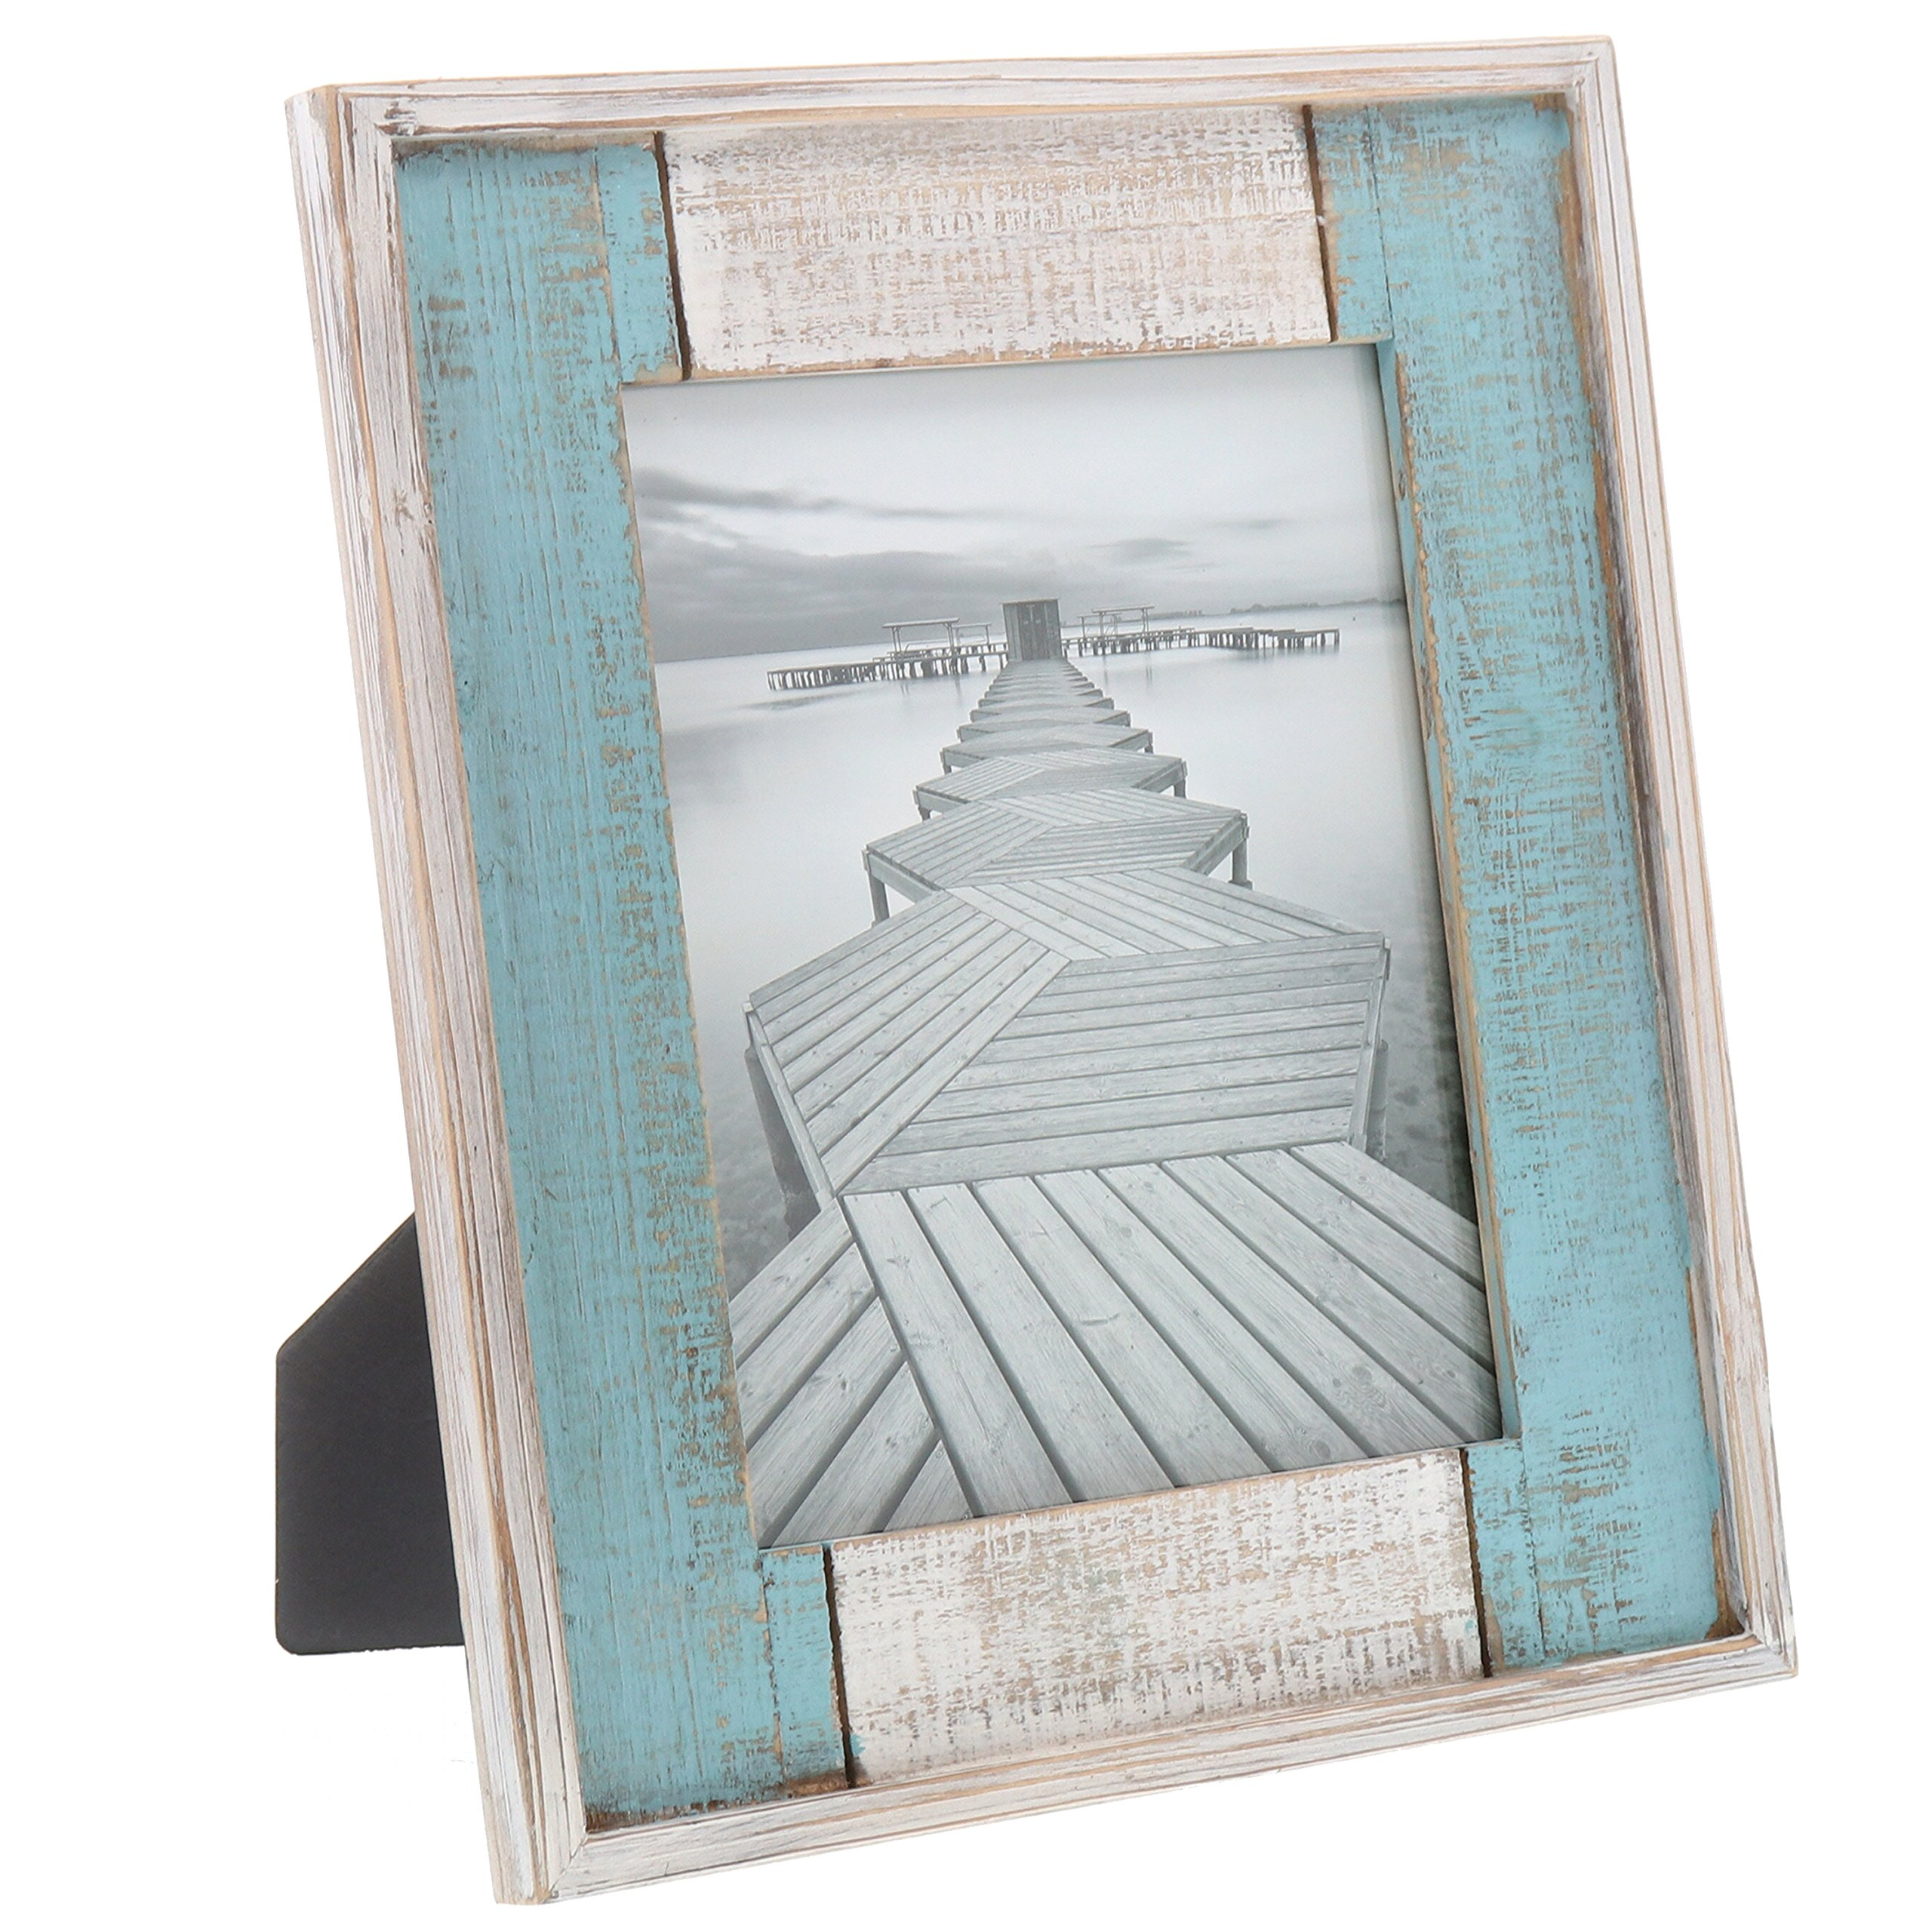 Barnyard Designs Rustic Distressed Picture Frame, 8'' x 10'' Wood Photo Frame in White and Turquoise by Barnyard Designs